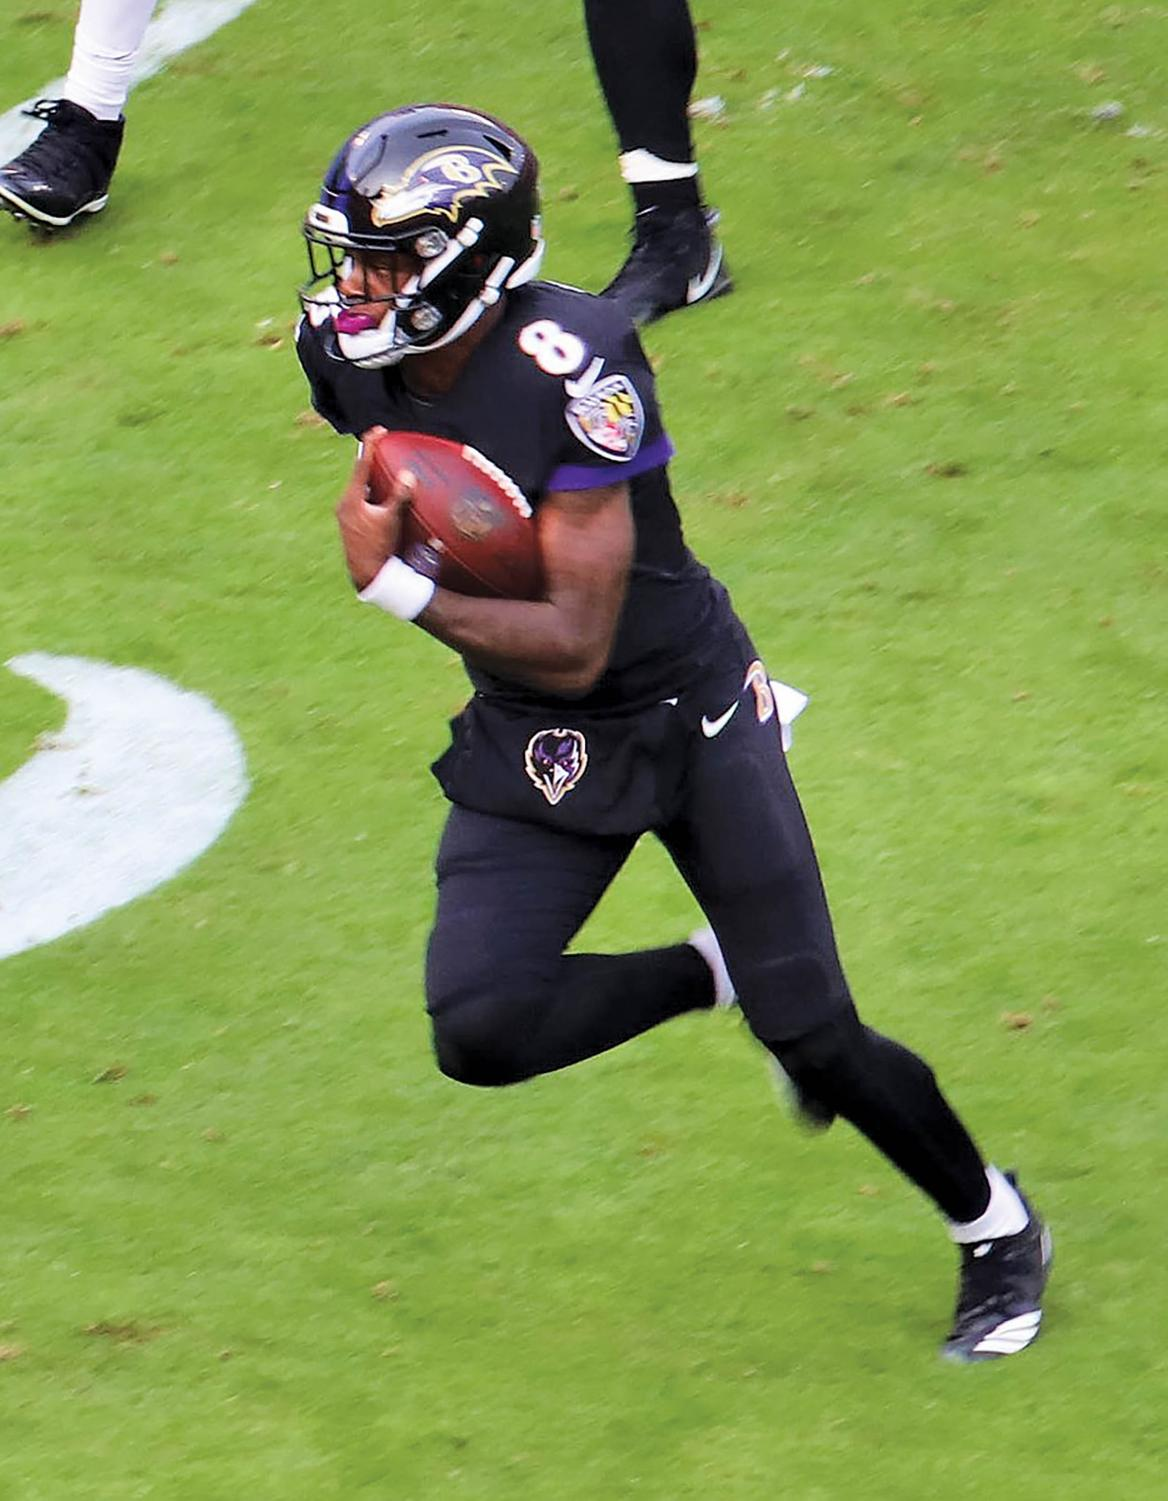 Baltimore Ravens quarterback Lamar Jackson has taken a massive leap in his second year in the NFL. He has led the Ravens to an impressive 8-2 record and is the front-runner for league MVP.